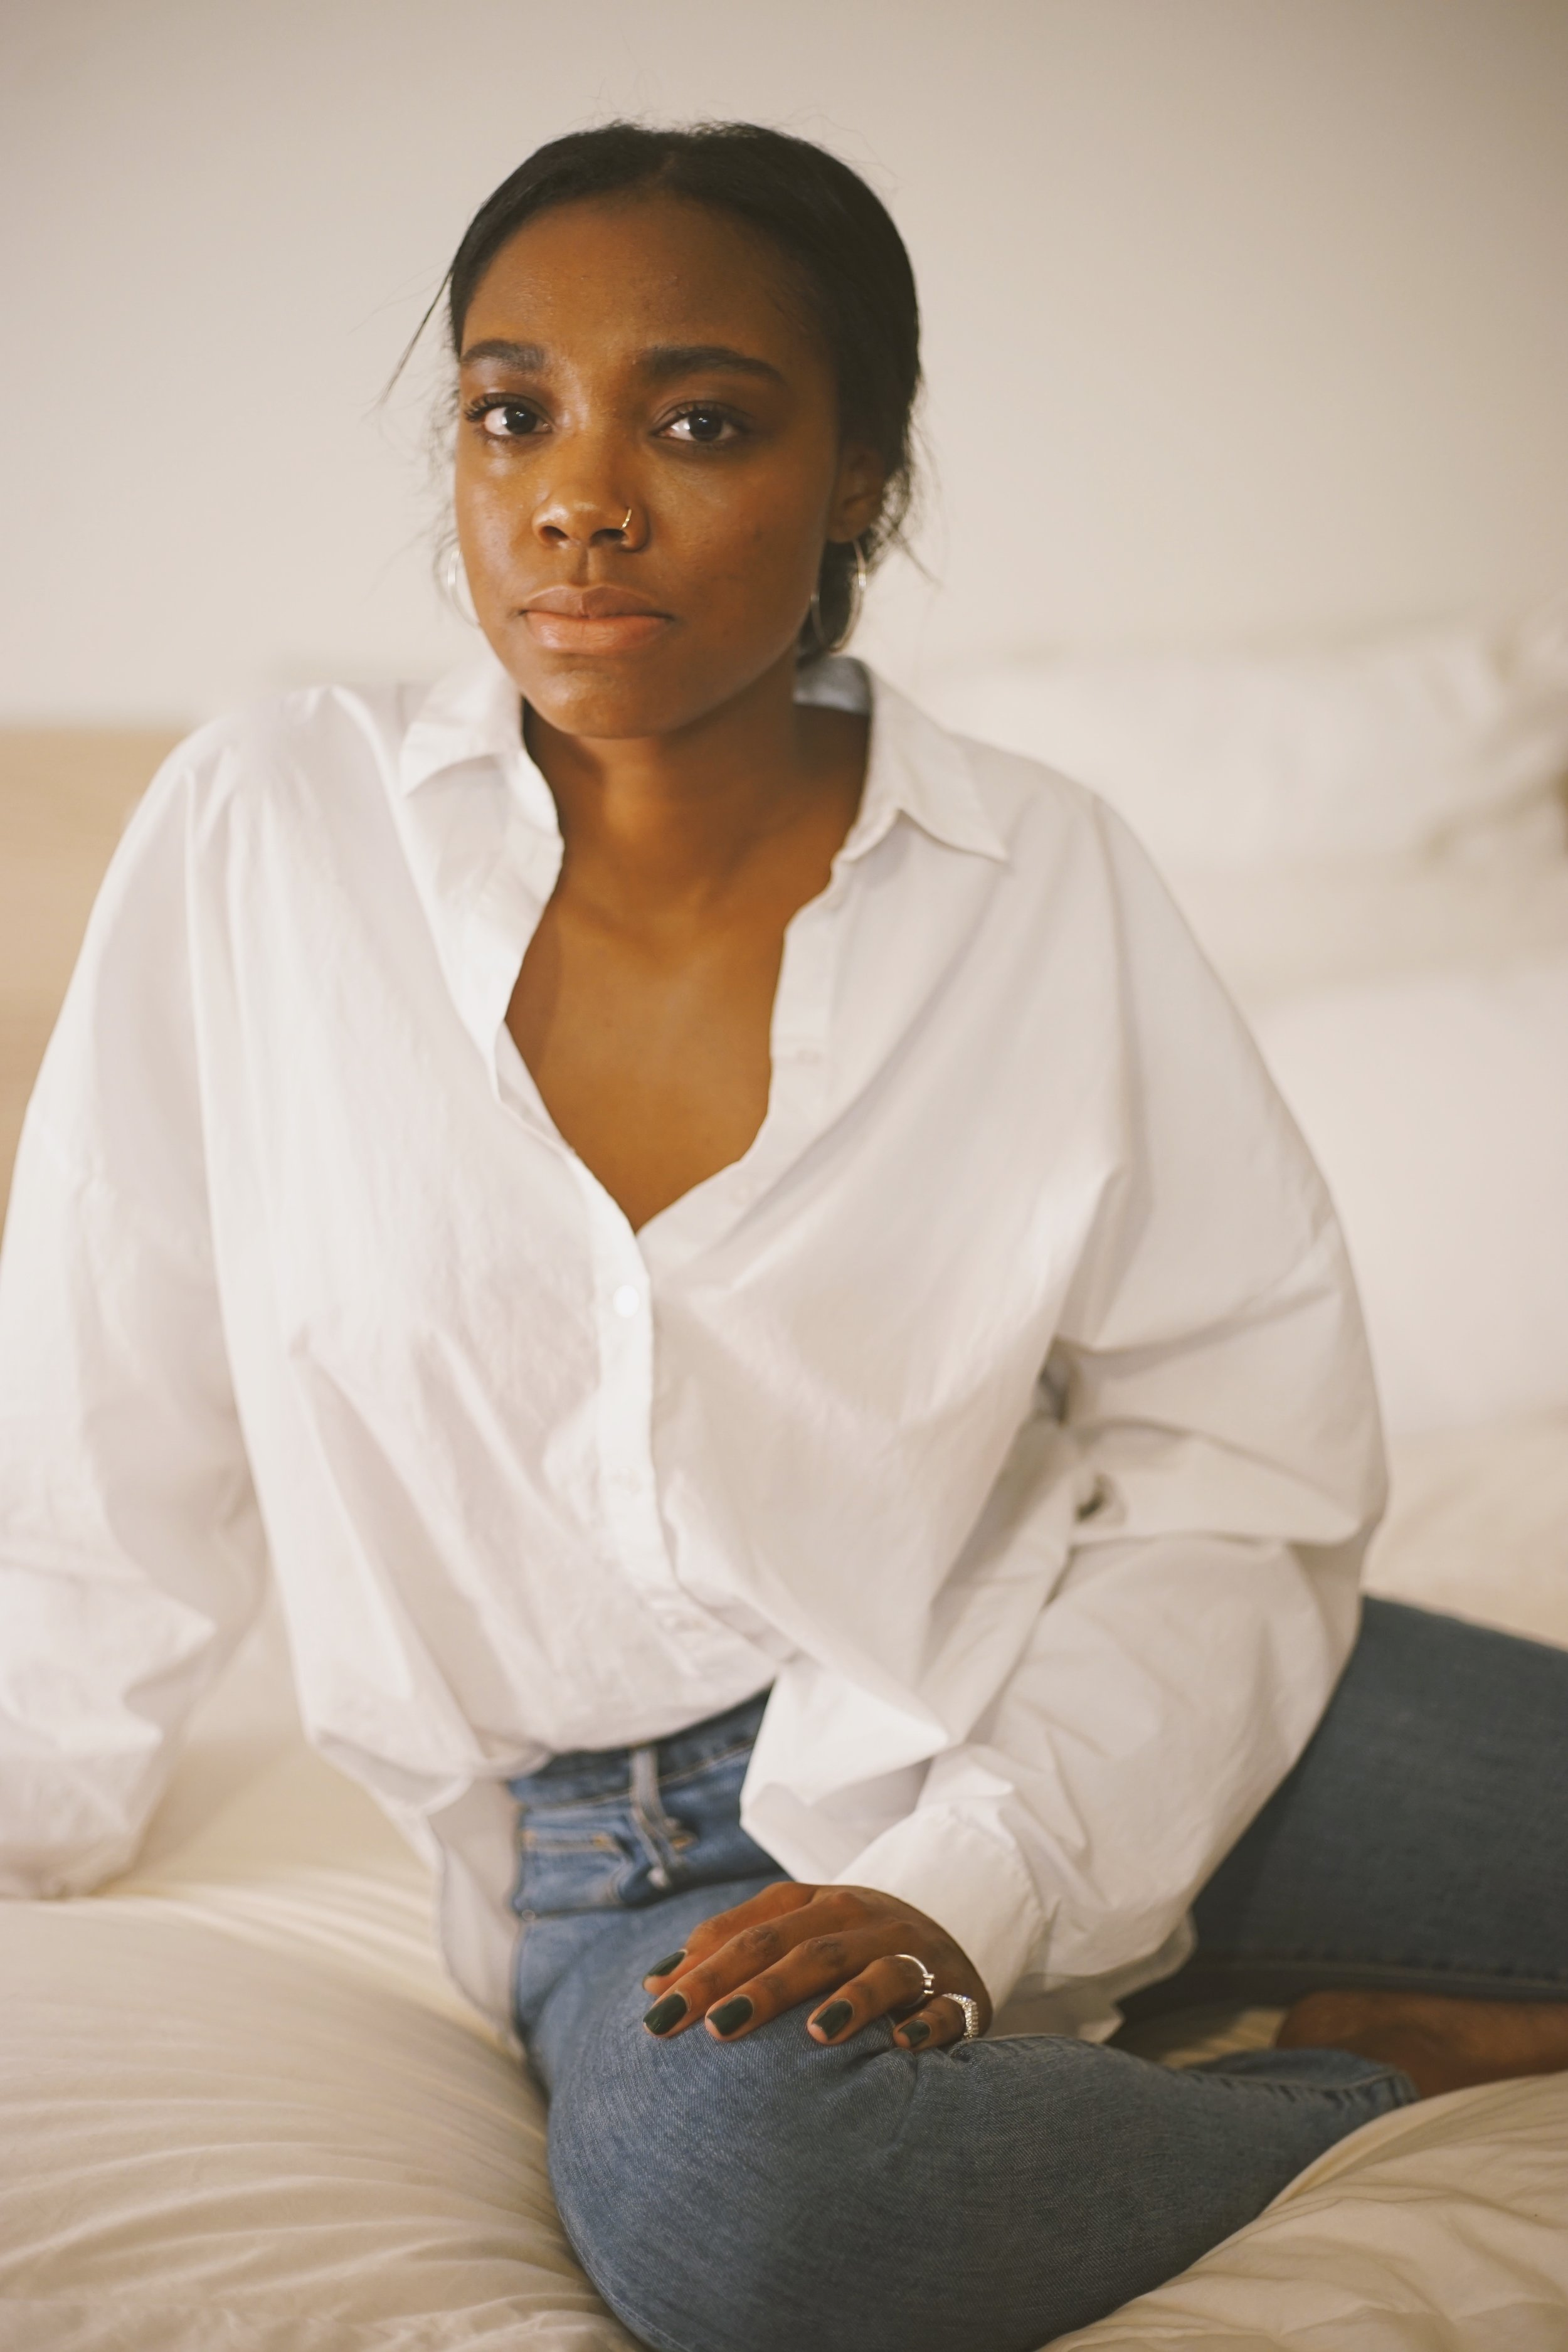 Founder and writer   Sundai Johnson   ,  is a former educator, and holds a BA from University of Michigan, and MA. Ed from Stanford University. Her work can be found in,  The Michigan Daily, The Periphery,    Chicago Literati   ,     Black Girl In Om     and  Flaunt Magazine.  In 2017, she published her first work in-print, a  chapbook    titled,  you always lose something in the move . She currently resides in Los Angeles, CA.    Photo by Lorenzo Diggins Jr.